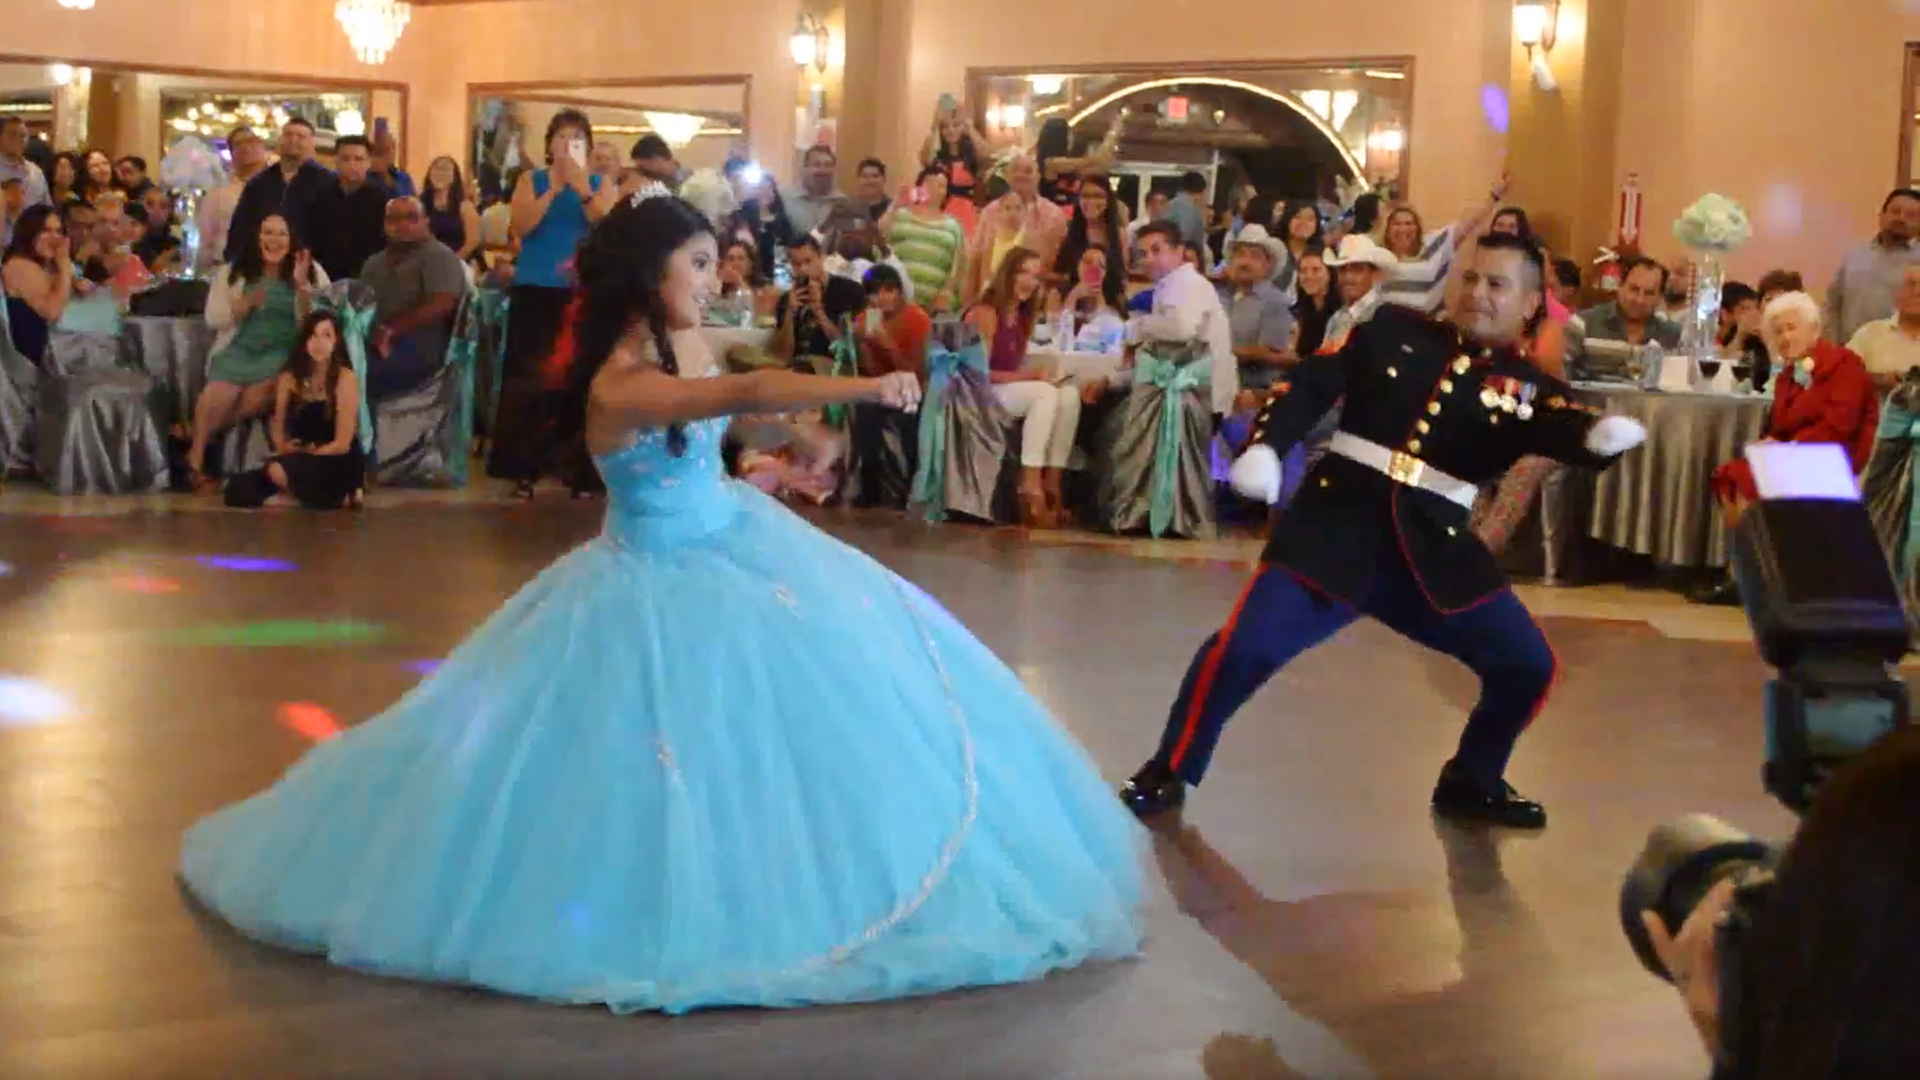 Girls epic dance with dad is highlight of her quinceanera